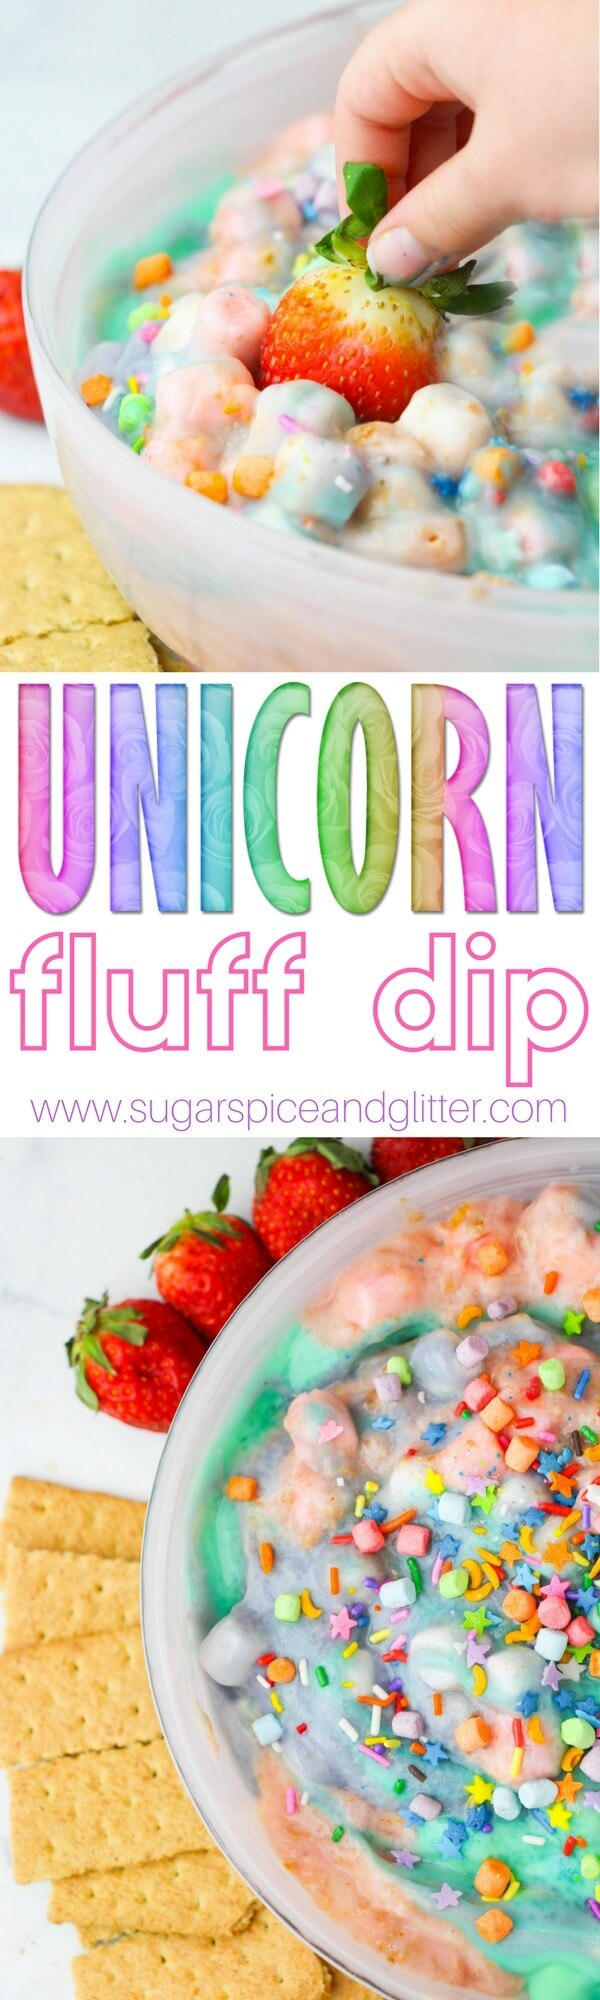 A light and fluffy vanilla-marshmallow fruit dip sprinkled with unicorn magic. Perfect for a unicorn party or playdate, or you can customize the colors and sprinkles to any other party theme!